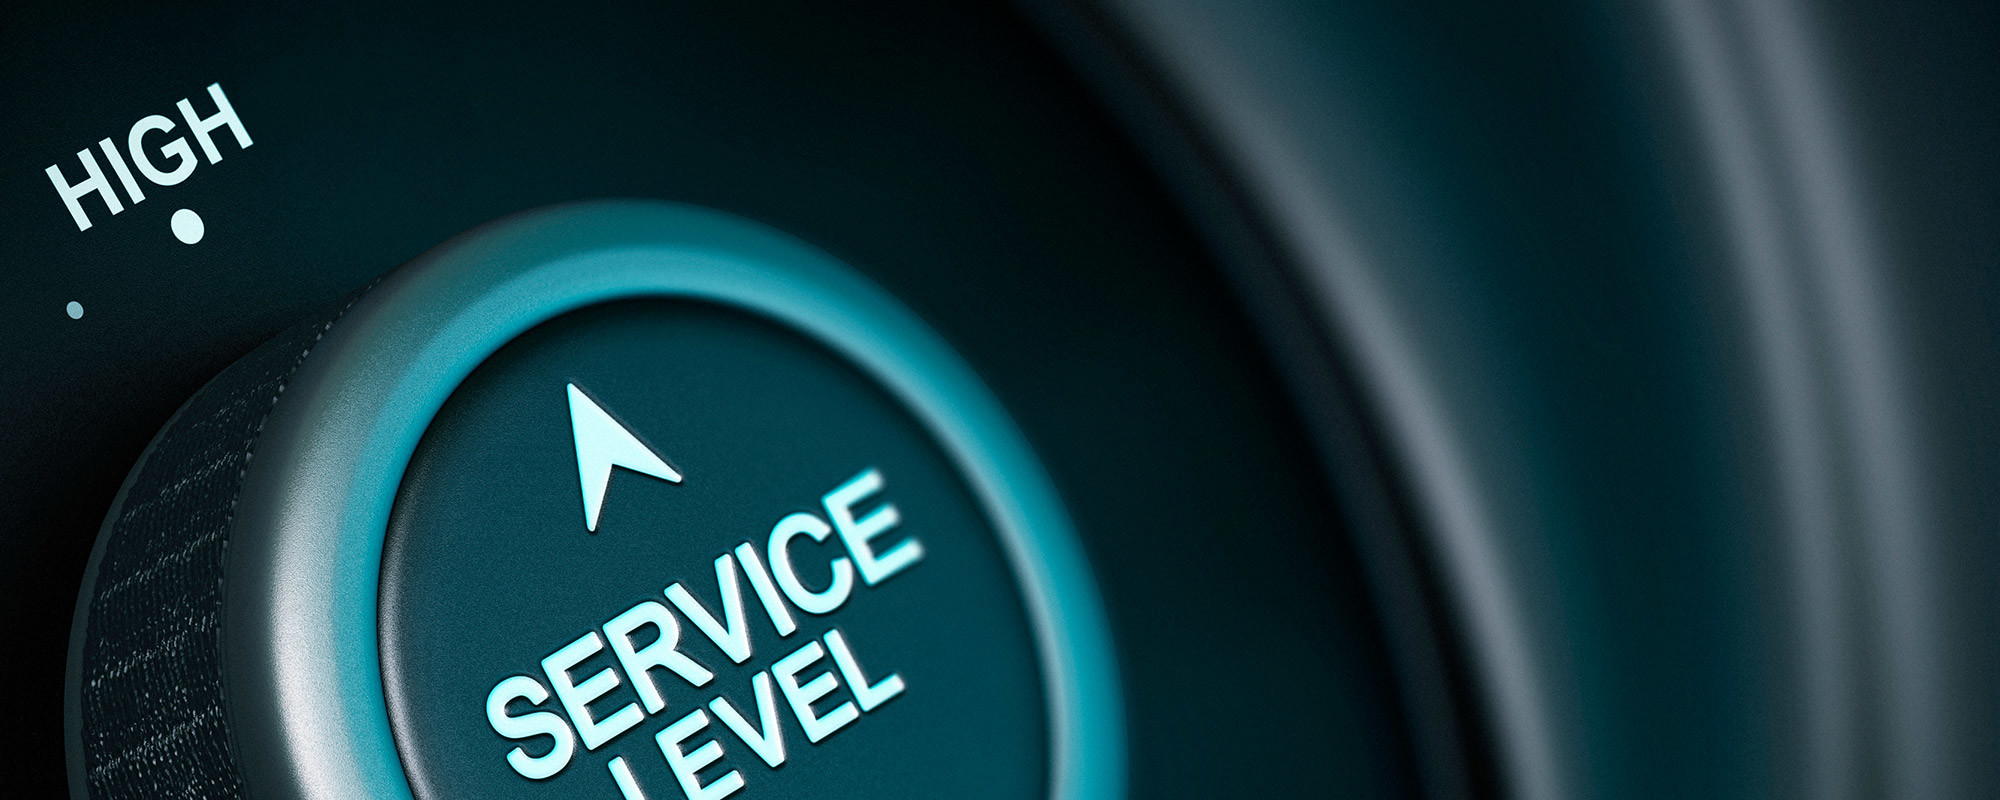 Setting the Standard For network equipment & deployment services